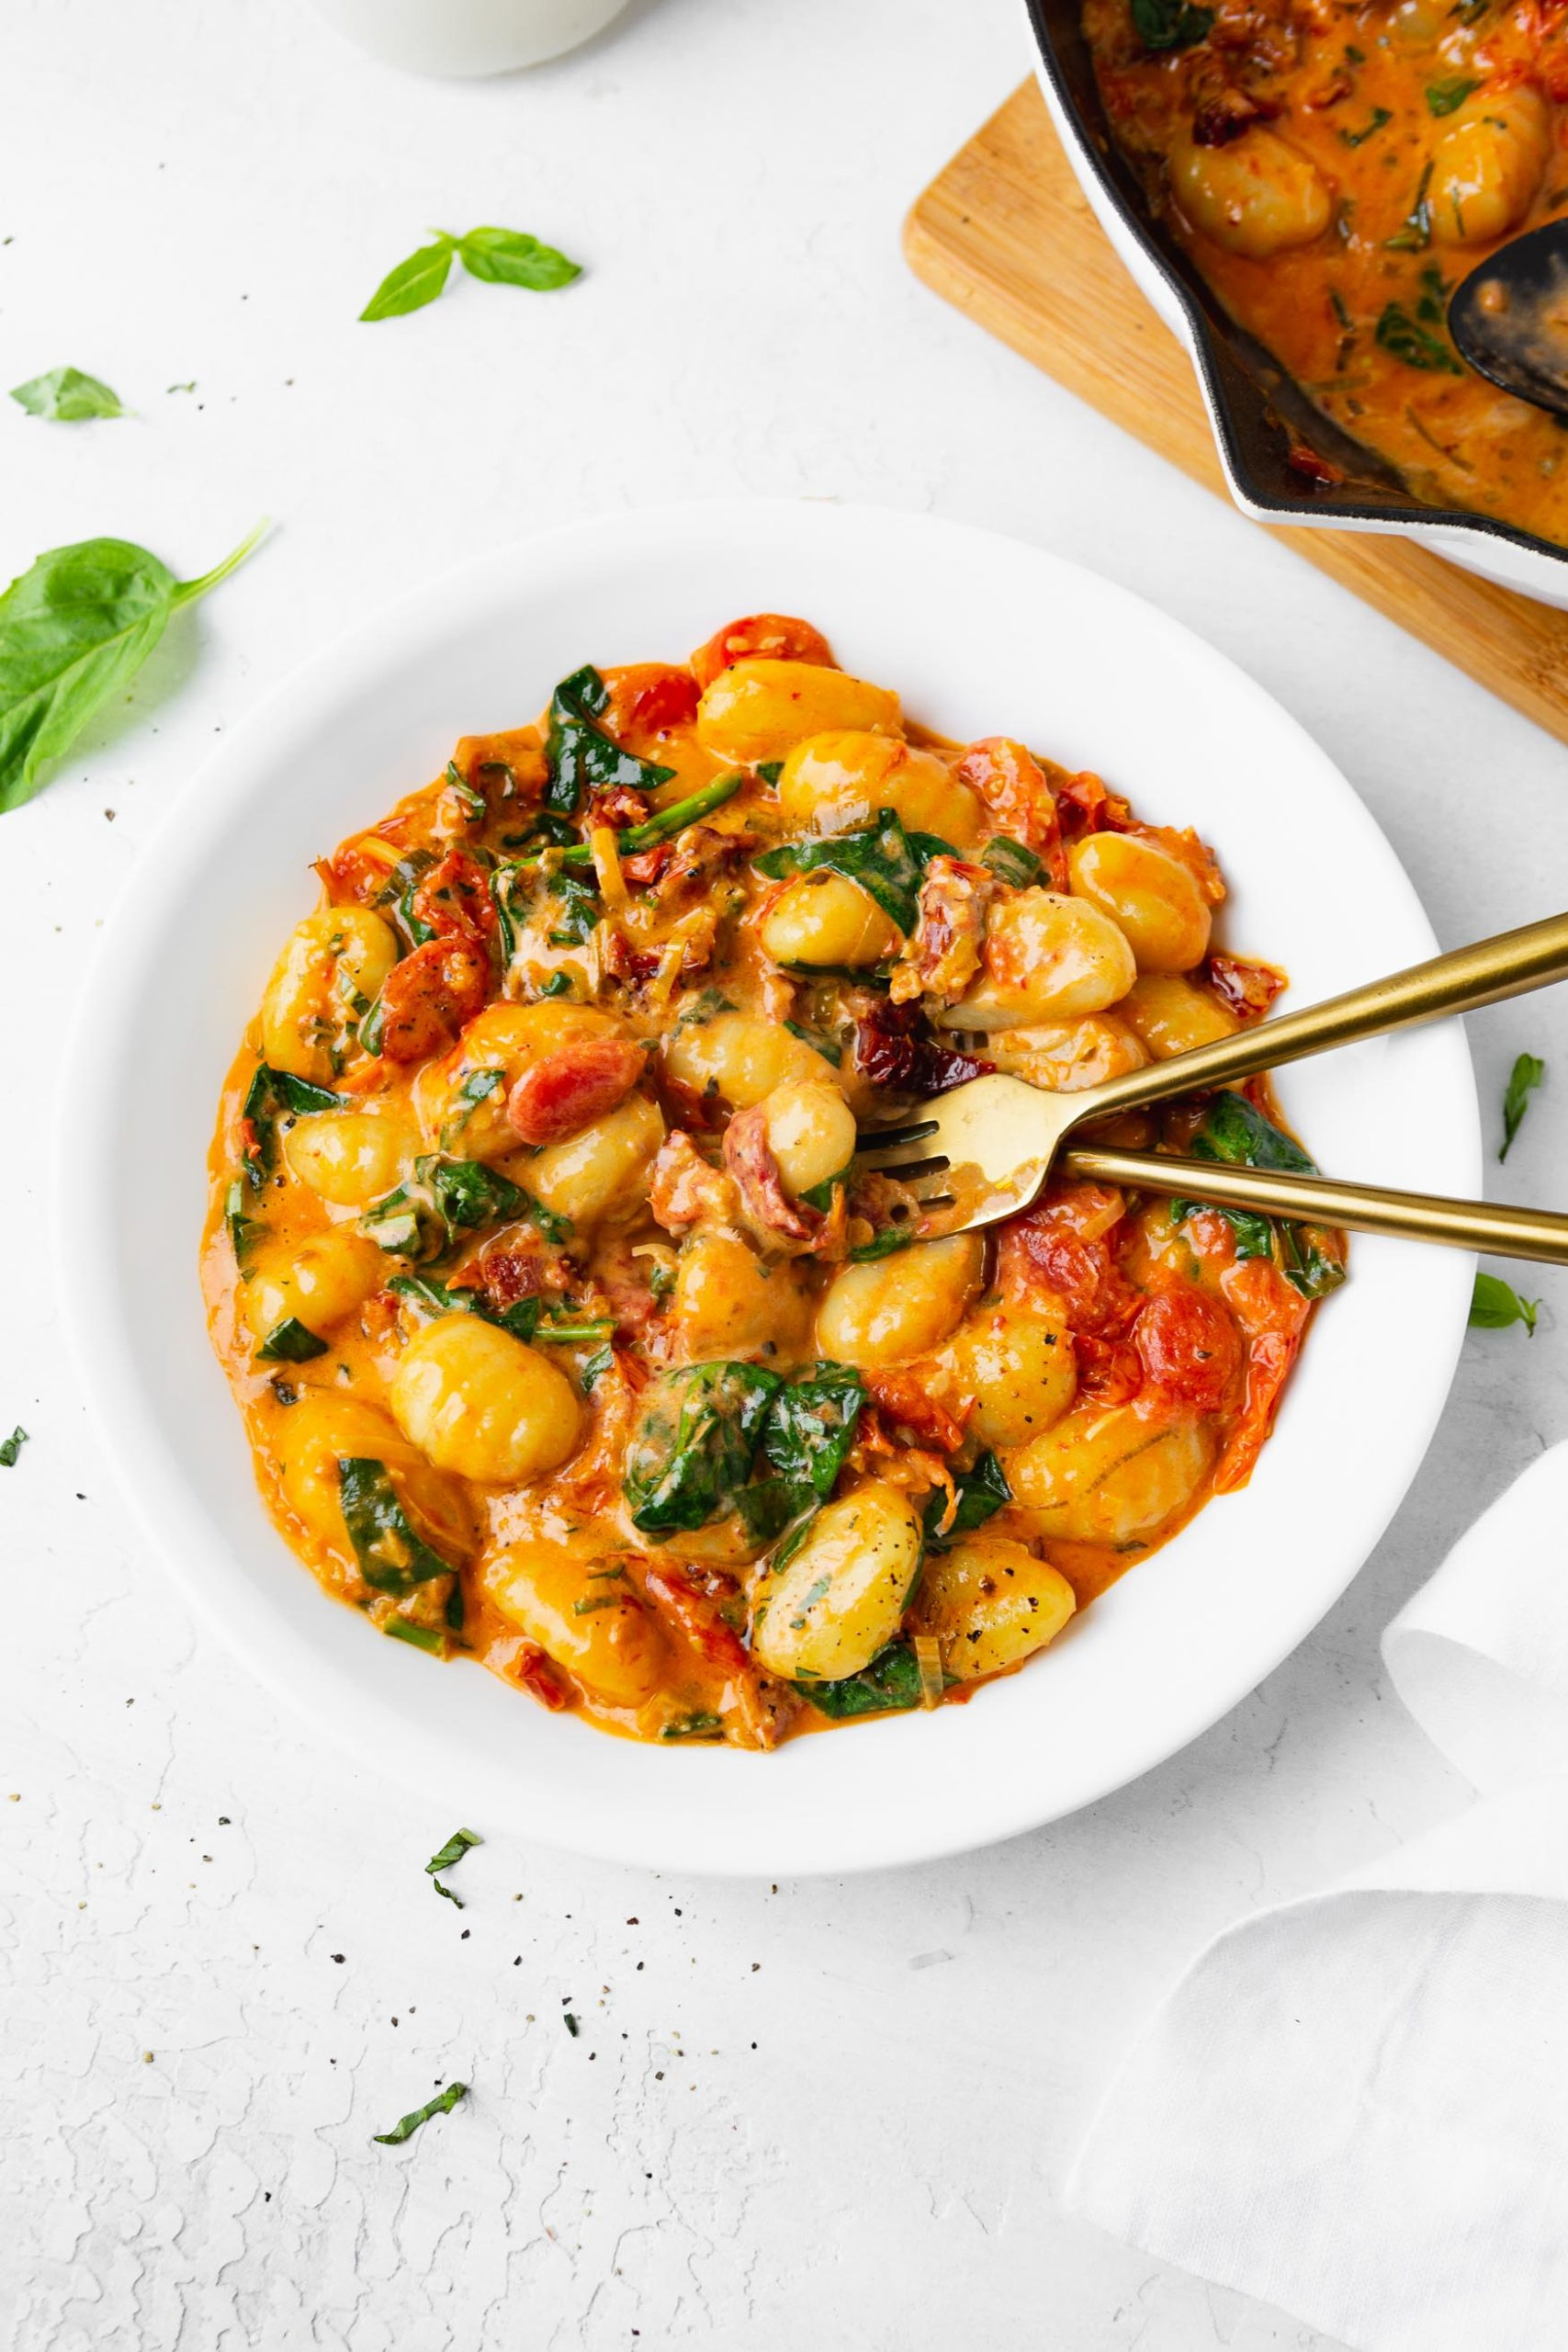 A photo of a white bowl full of creamy sun dried tomato gnocchi with a fork and spoon sitting in the bowl.